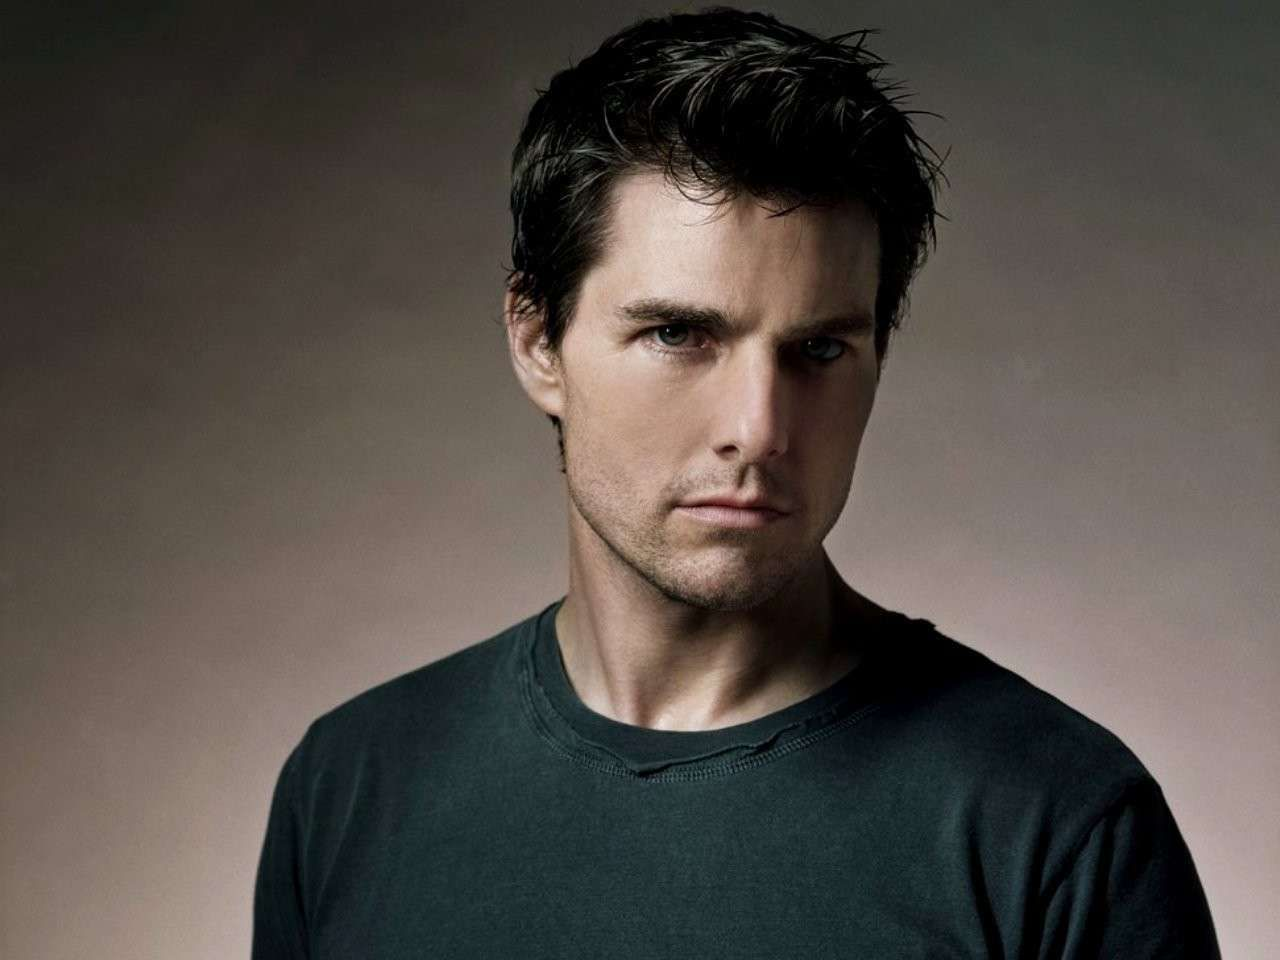 tom cruise hd wallpapers - free download latest tom cruise hd